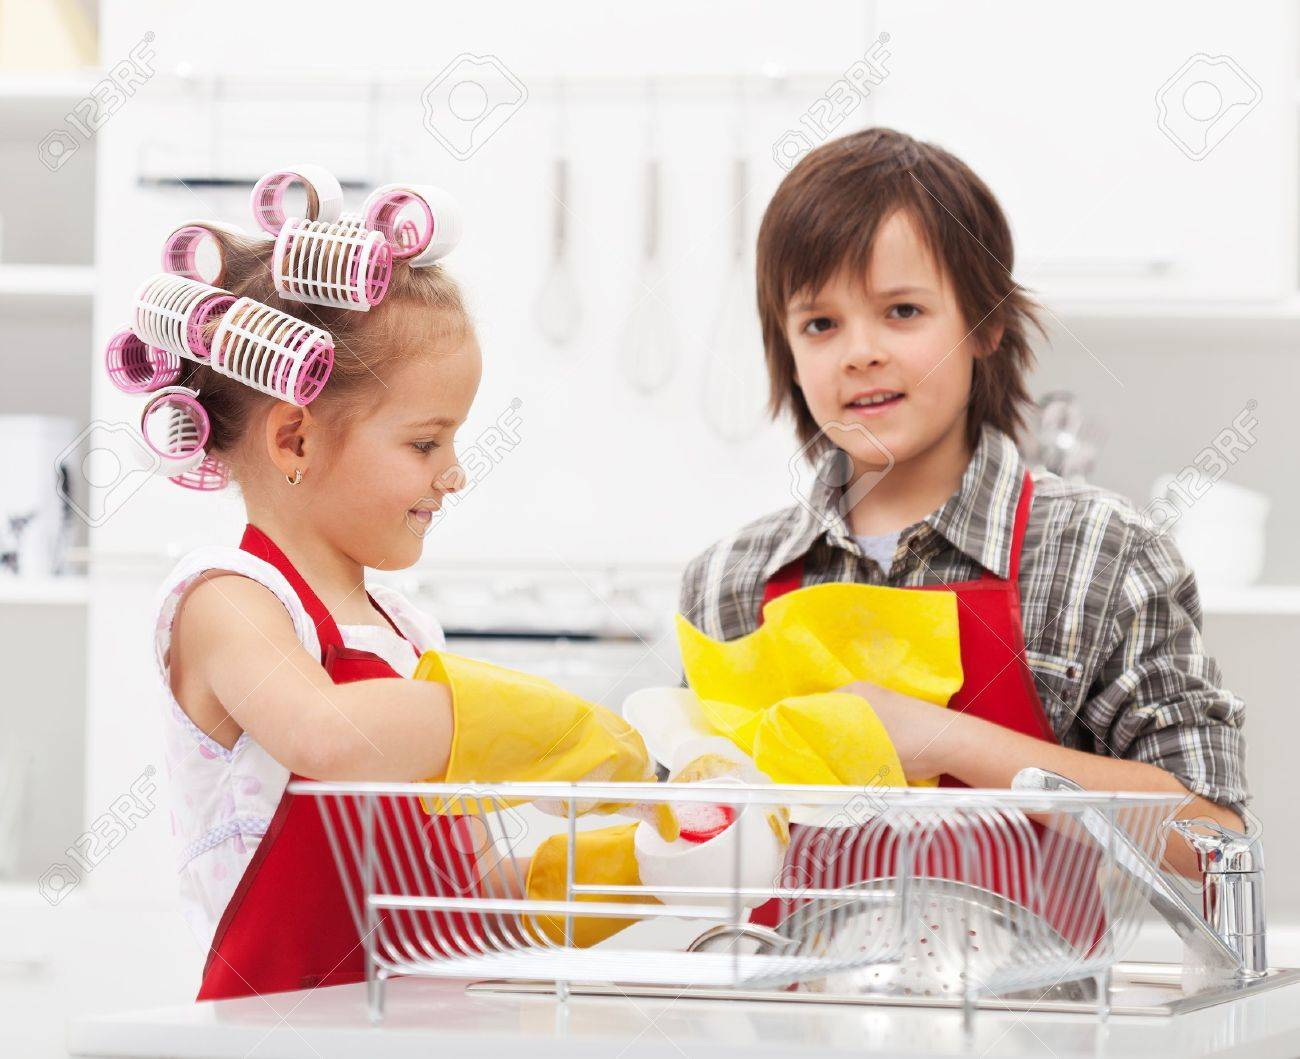 Kids doing the dishes together in the kitchen - closeup on sink area - 19337281